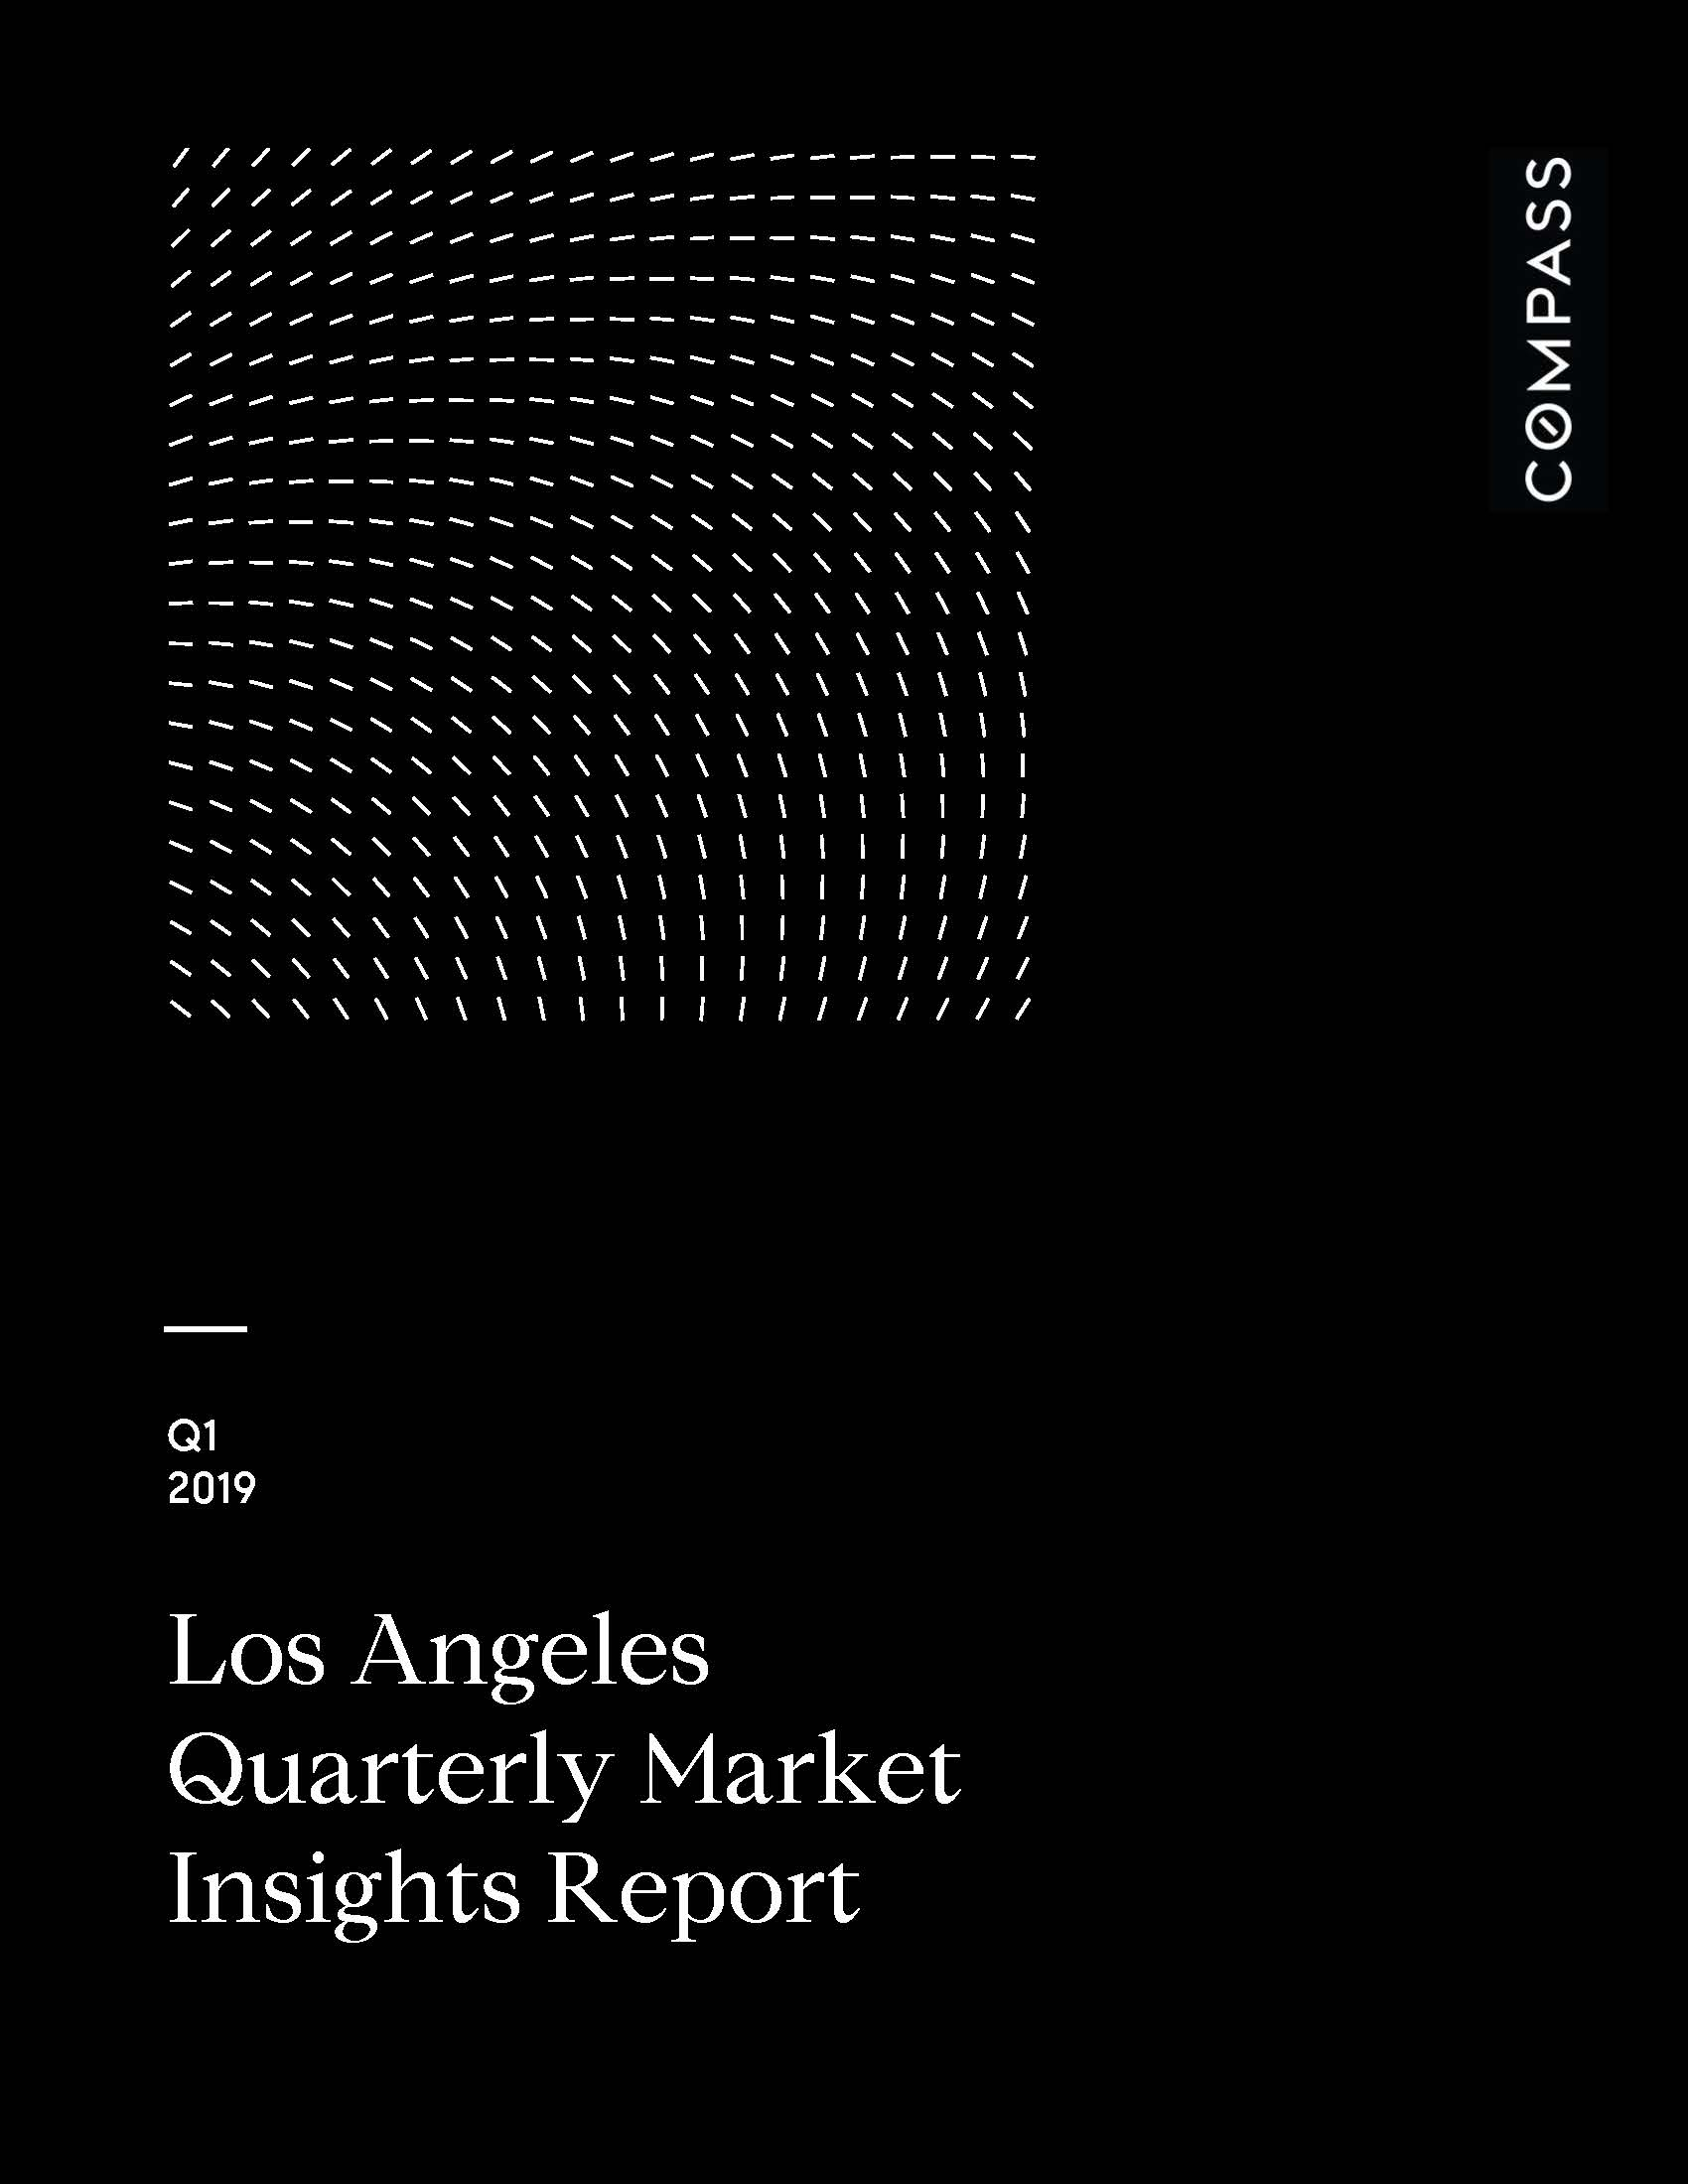 Los Angeles Quarterly Market Insights Report - Q1 2019